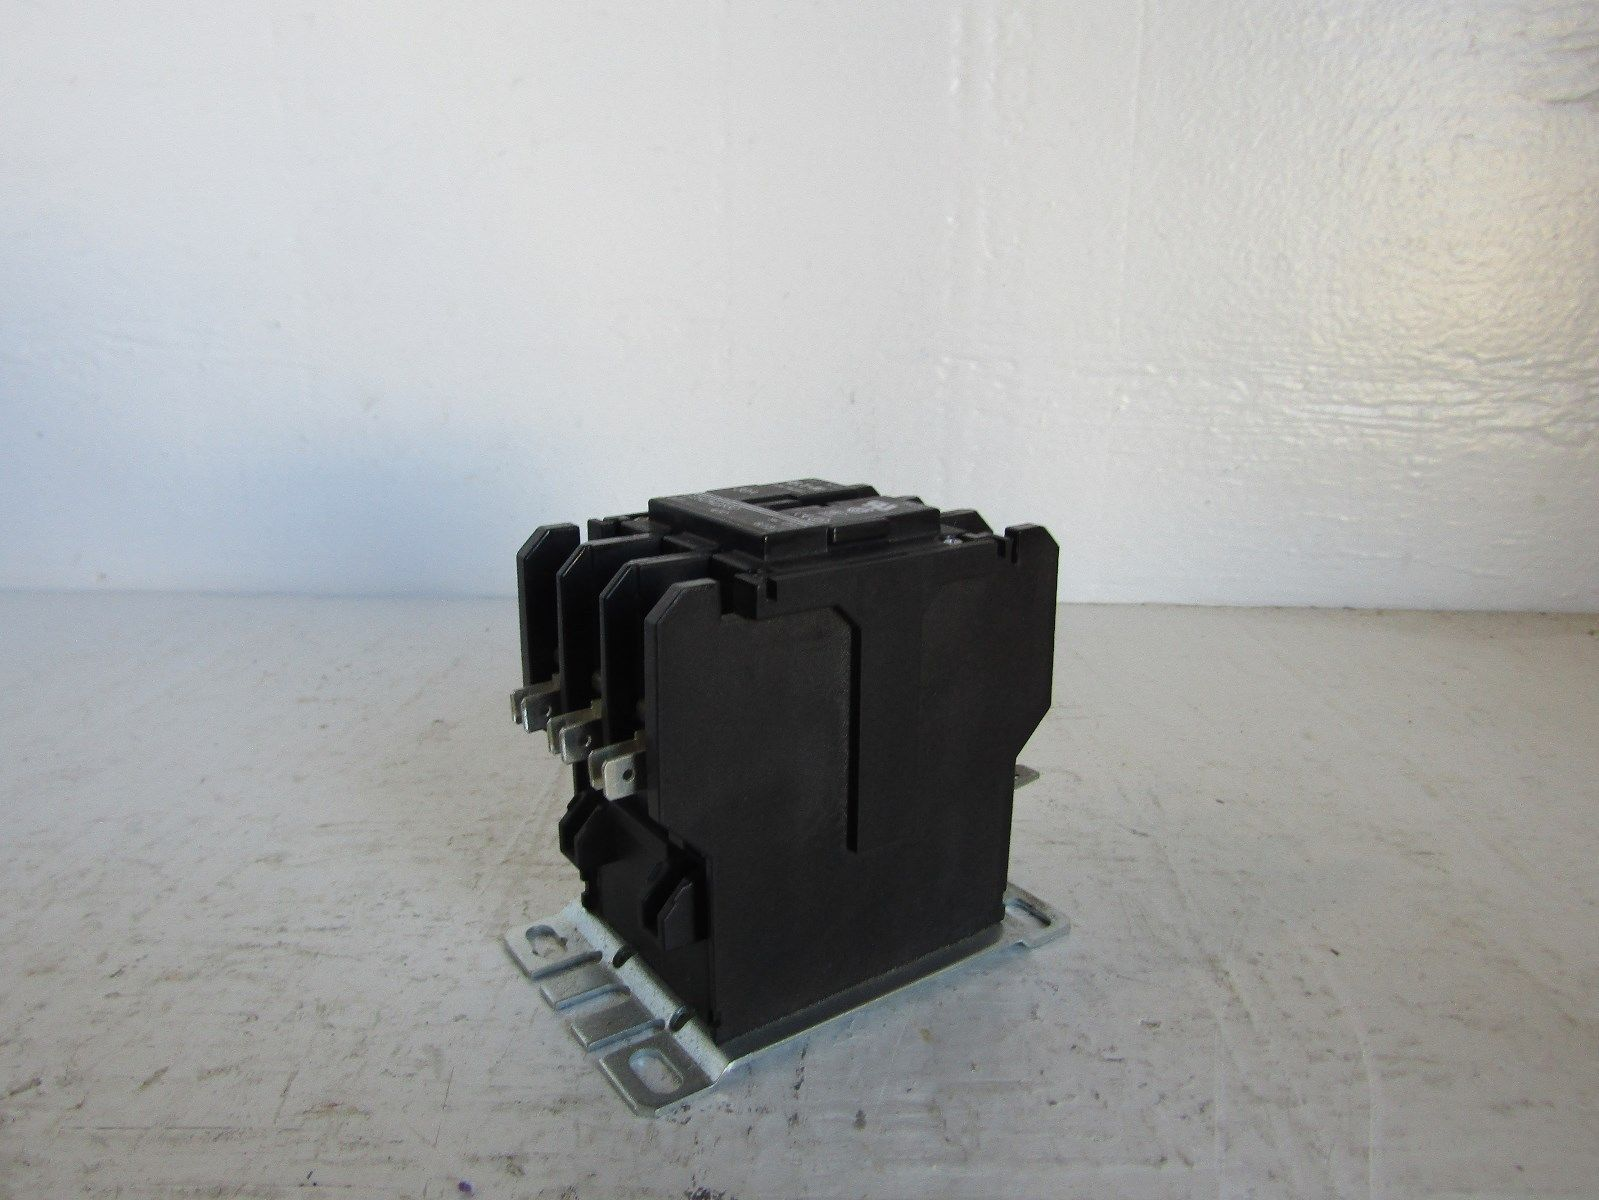 CUTLER HAMMER C25DND330 30 AMP 3 POLE CONTACTOR 120 VOLT COIL 331989252131 2?fit\=1000%2C750\&ssl\=1 c25dnd330 wiring diagram 3 phase contactor wiring diagram start Eaton C25dnf340 Contactor at panicattacktreatment.co